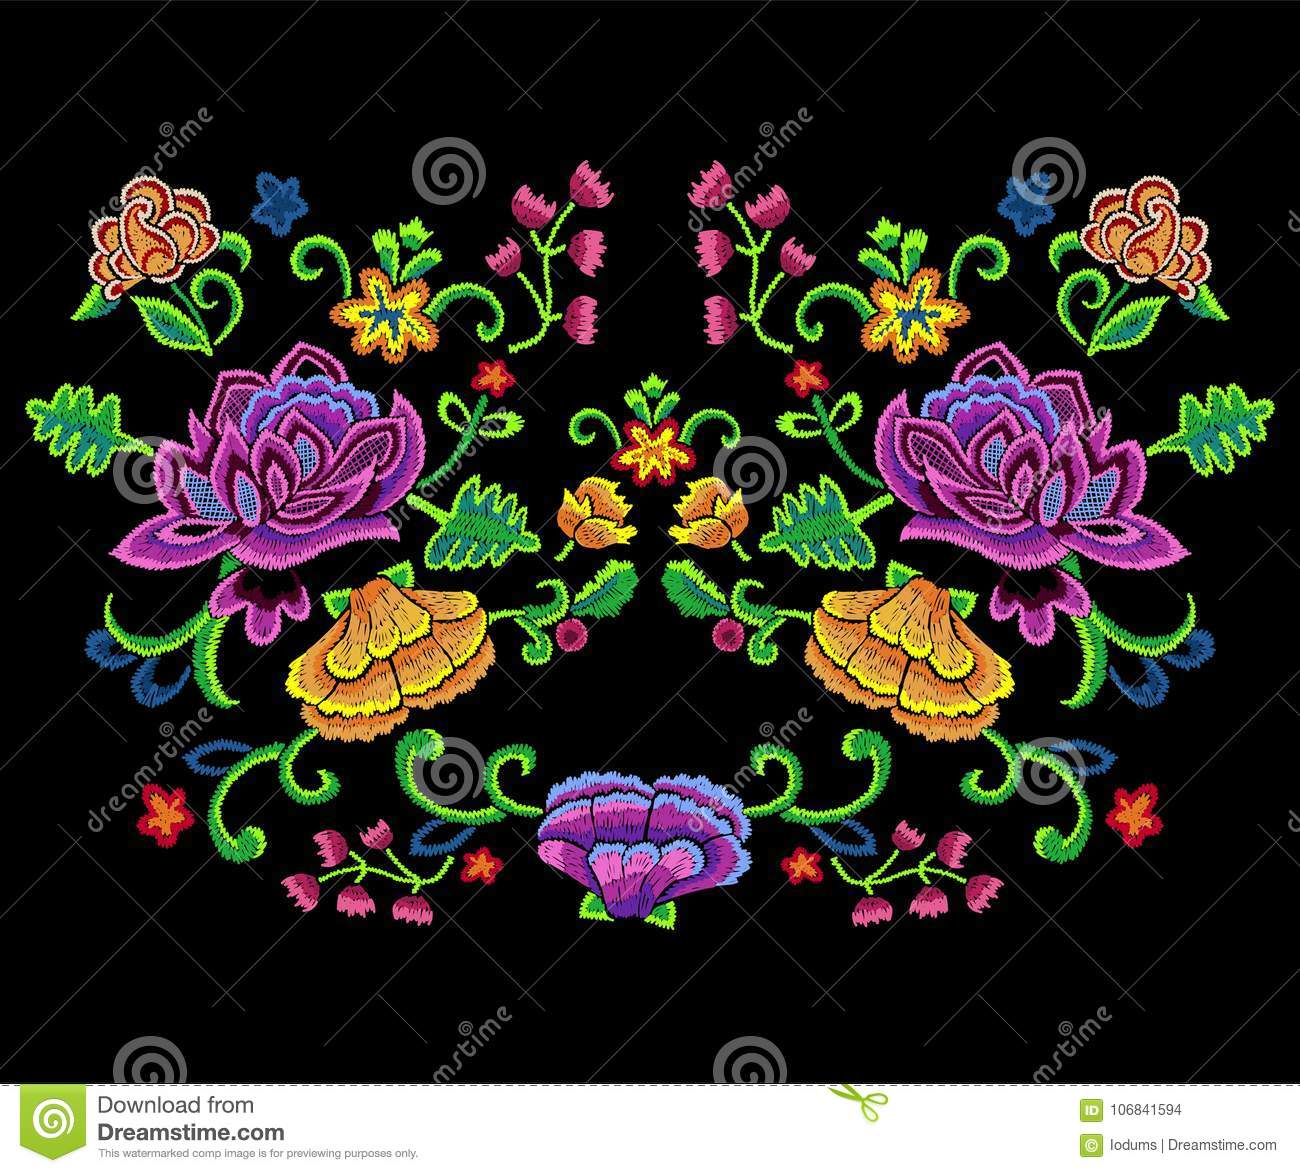 Embroidery botanical trend pattern with colorful simplify flowers.